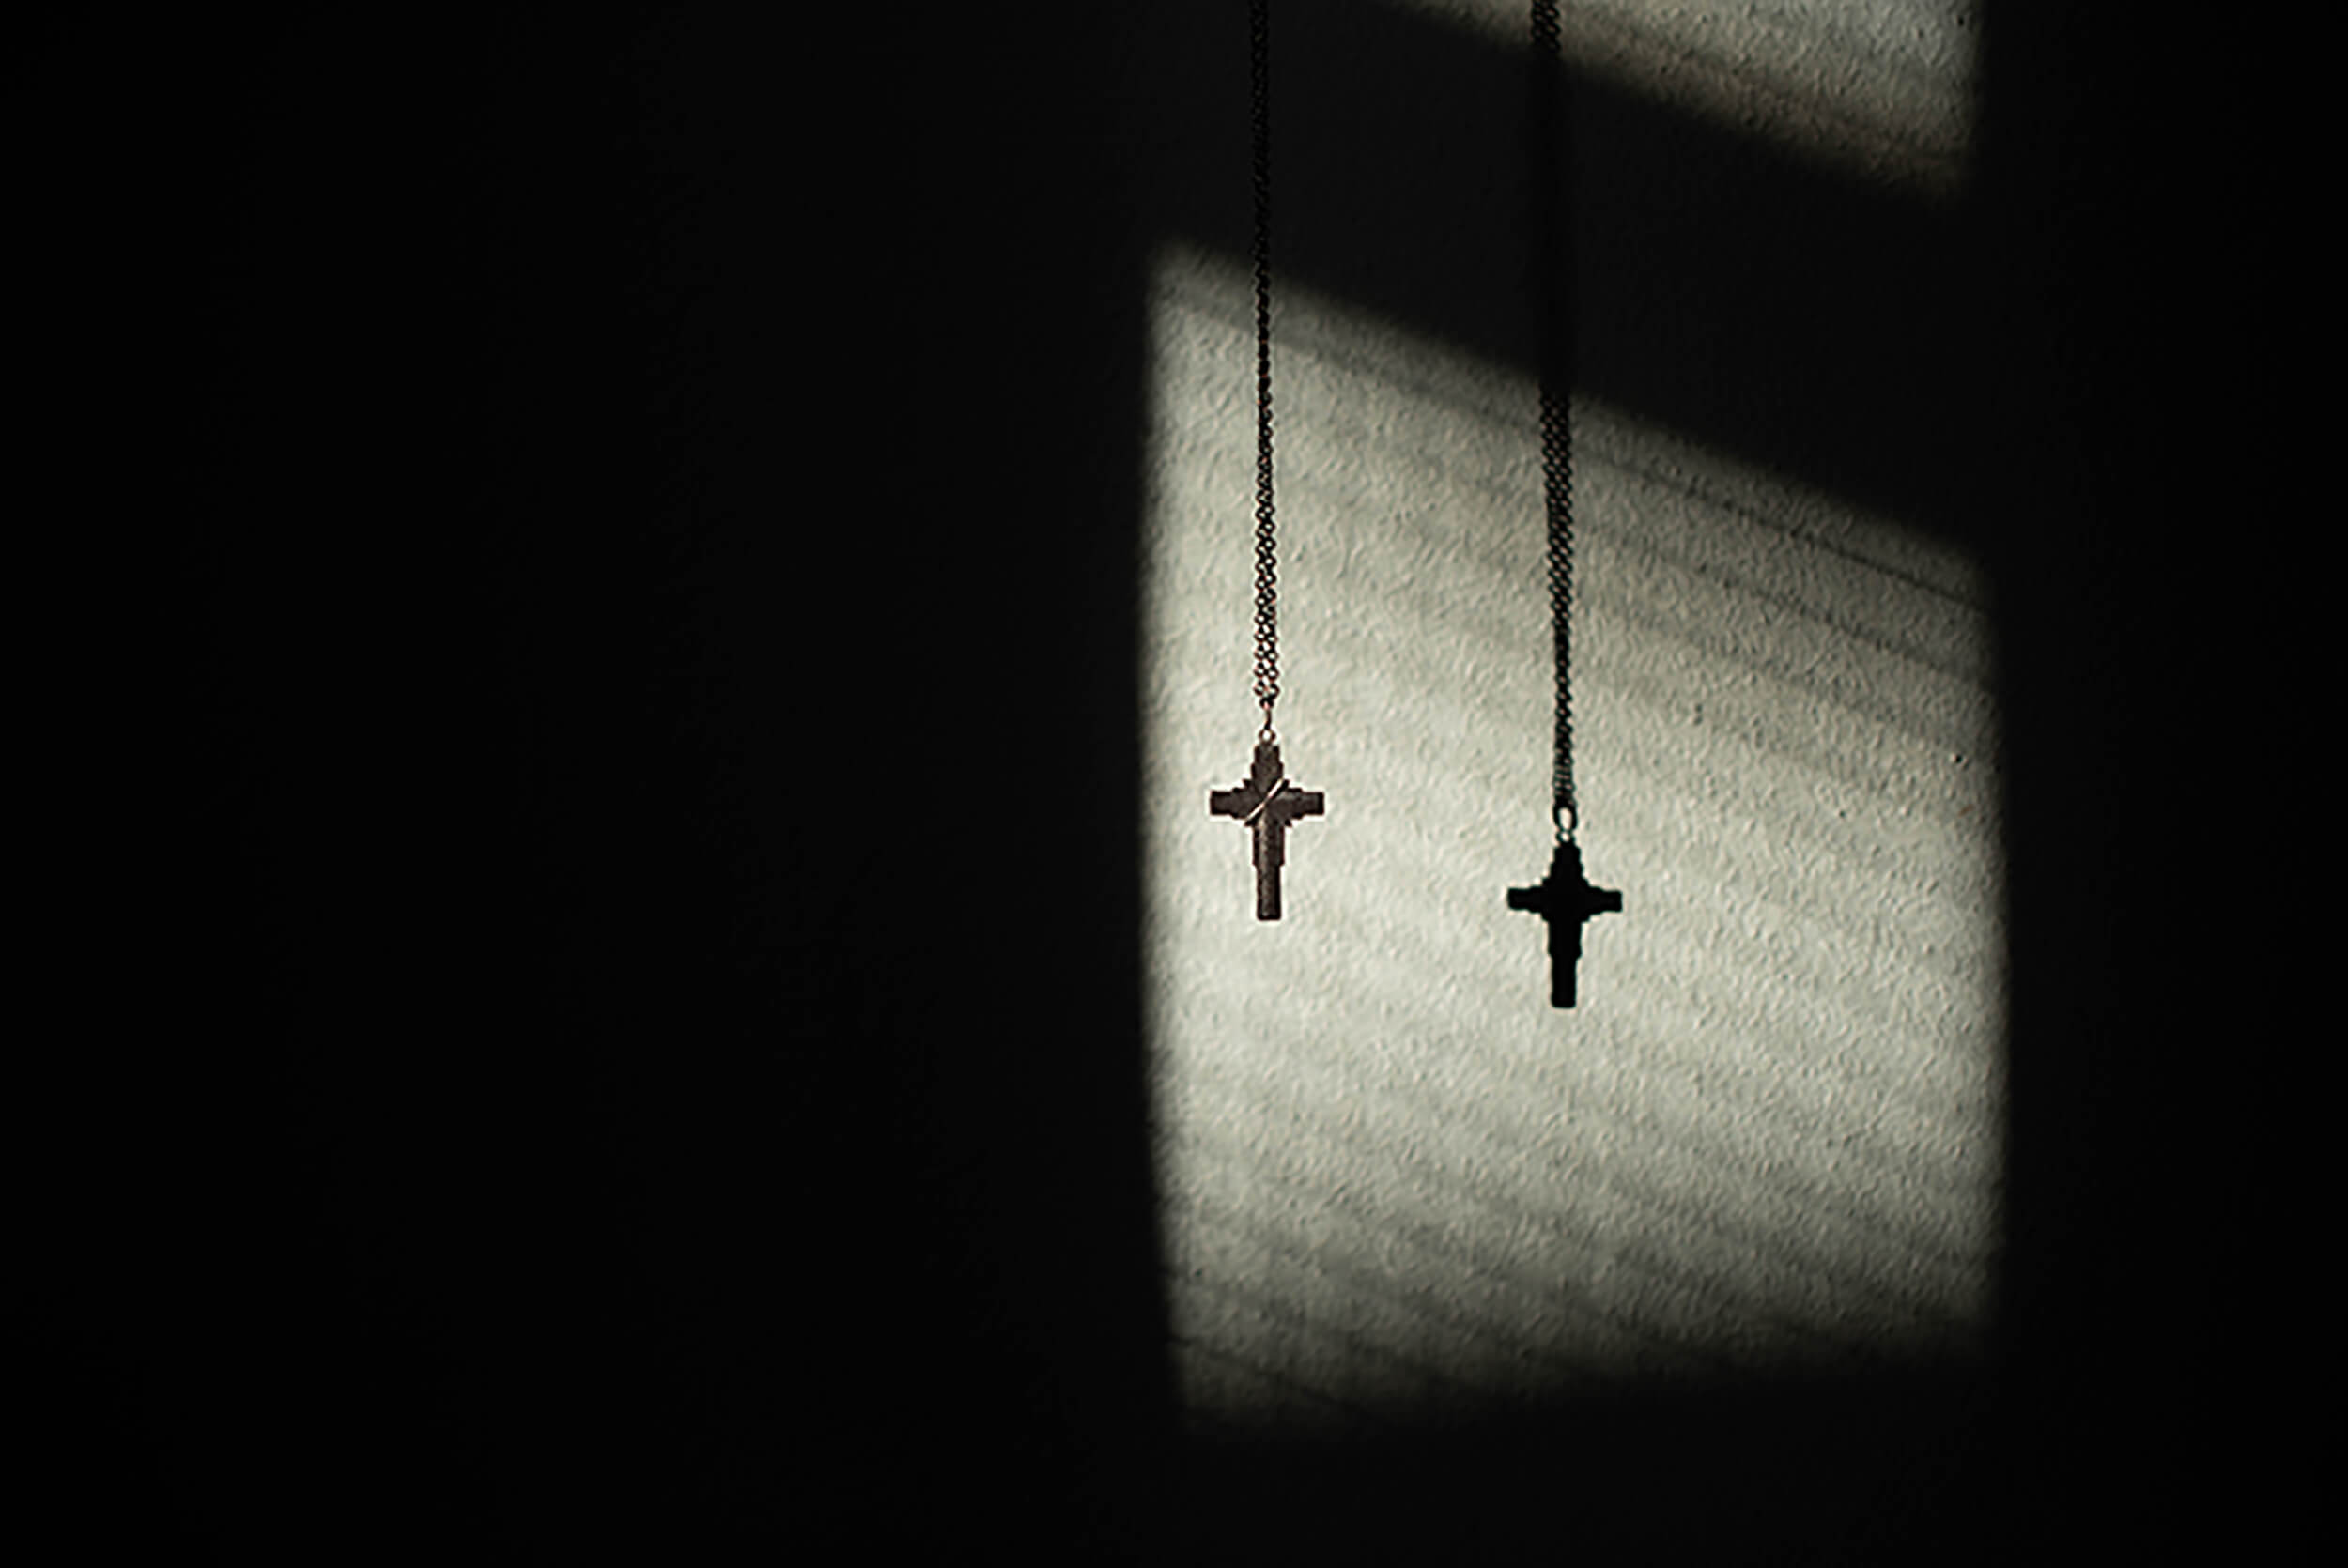 Martin Skraban - Incurable crosses hanging in sunlight